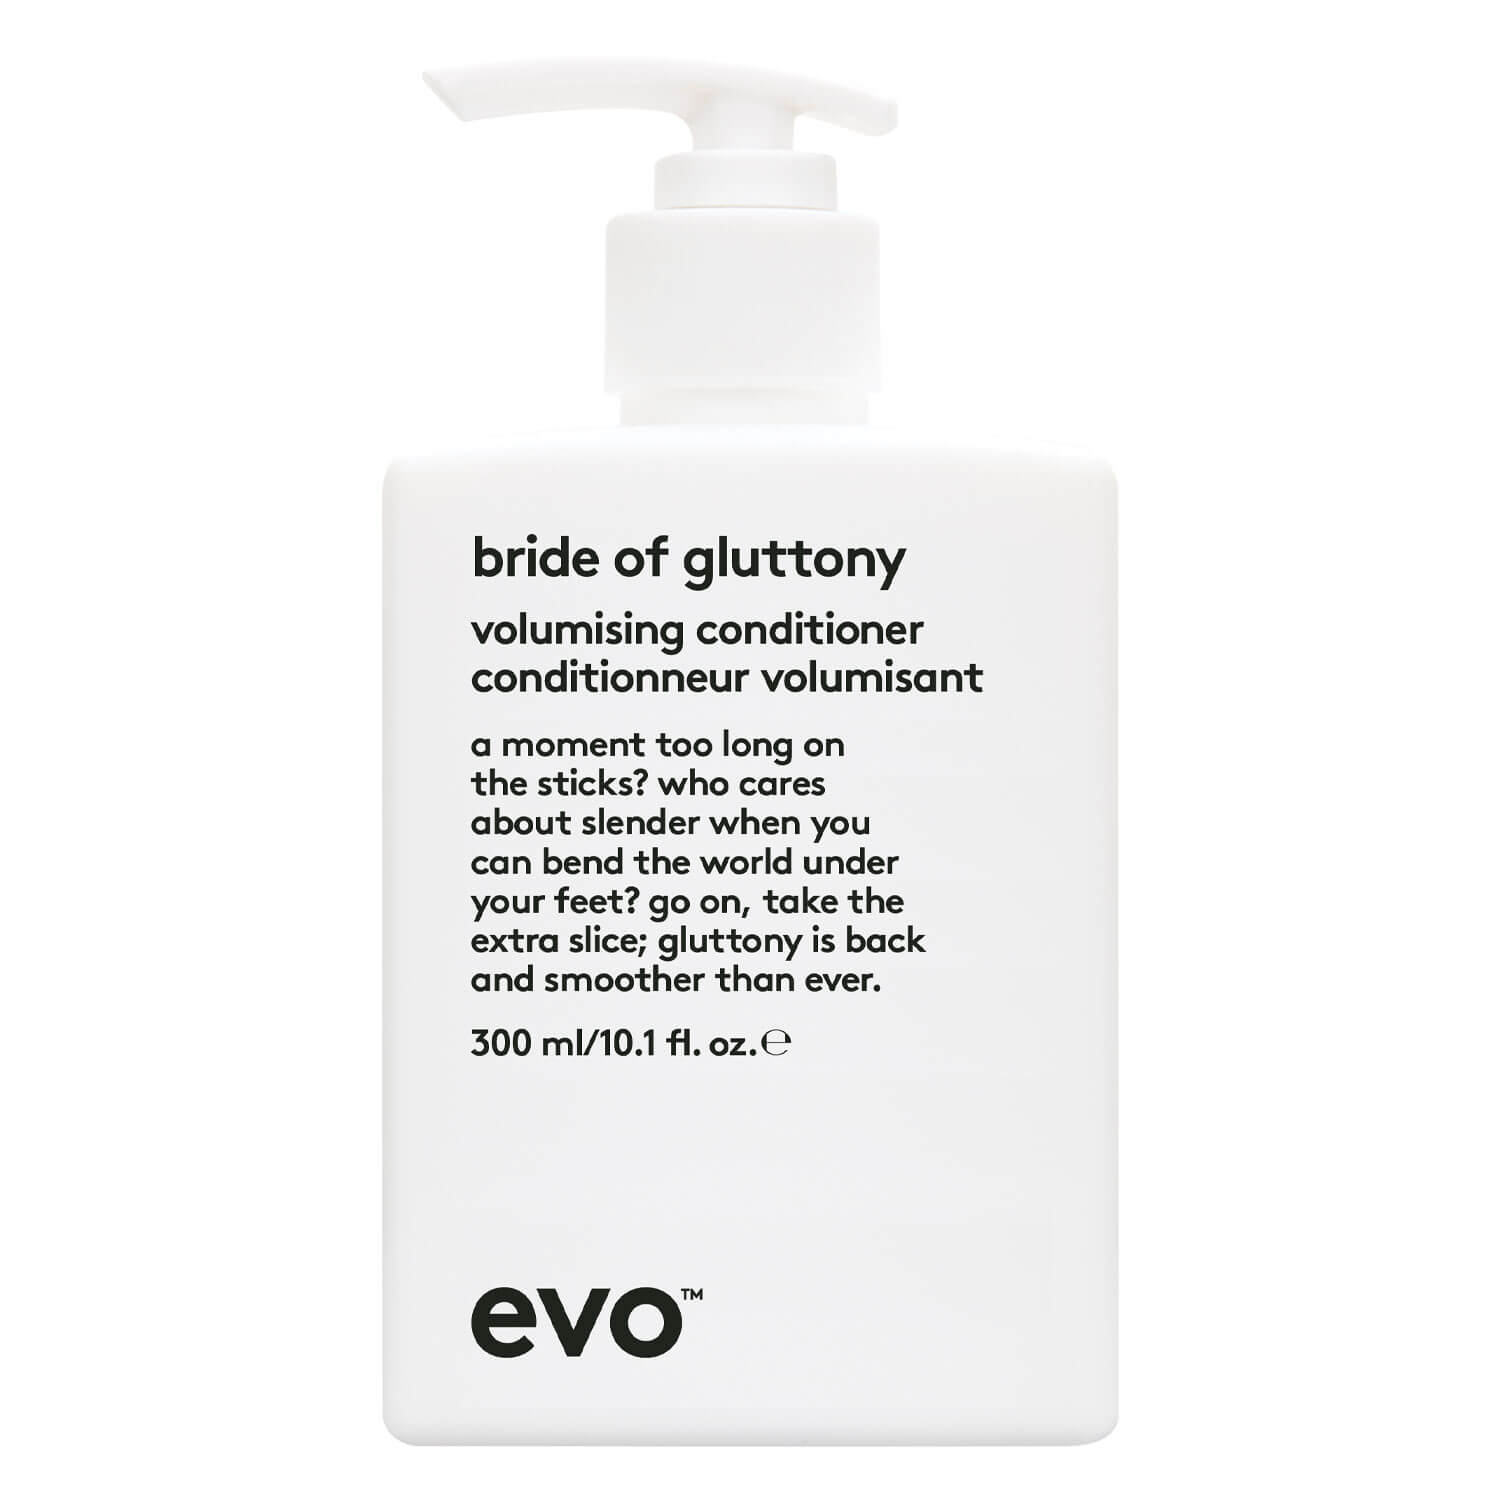 evo volume - bride of gluttony volume conditioner